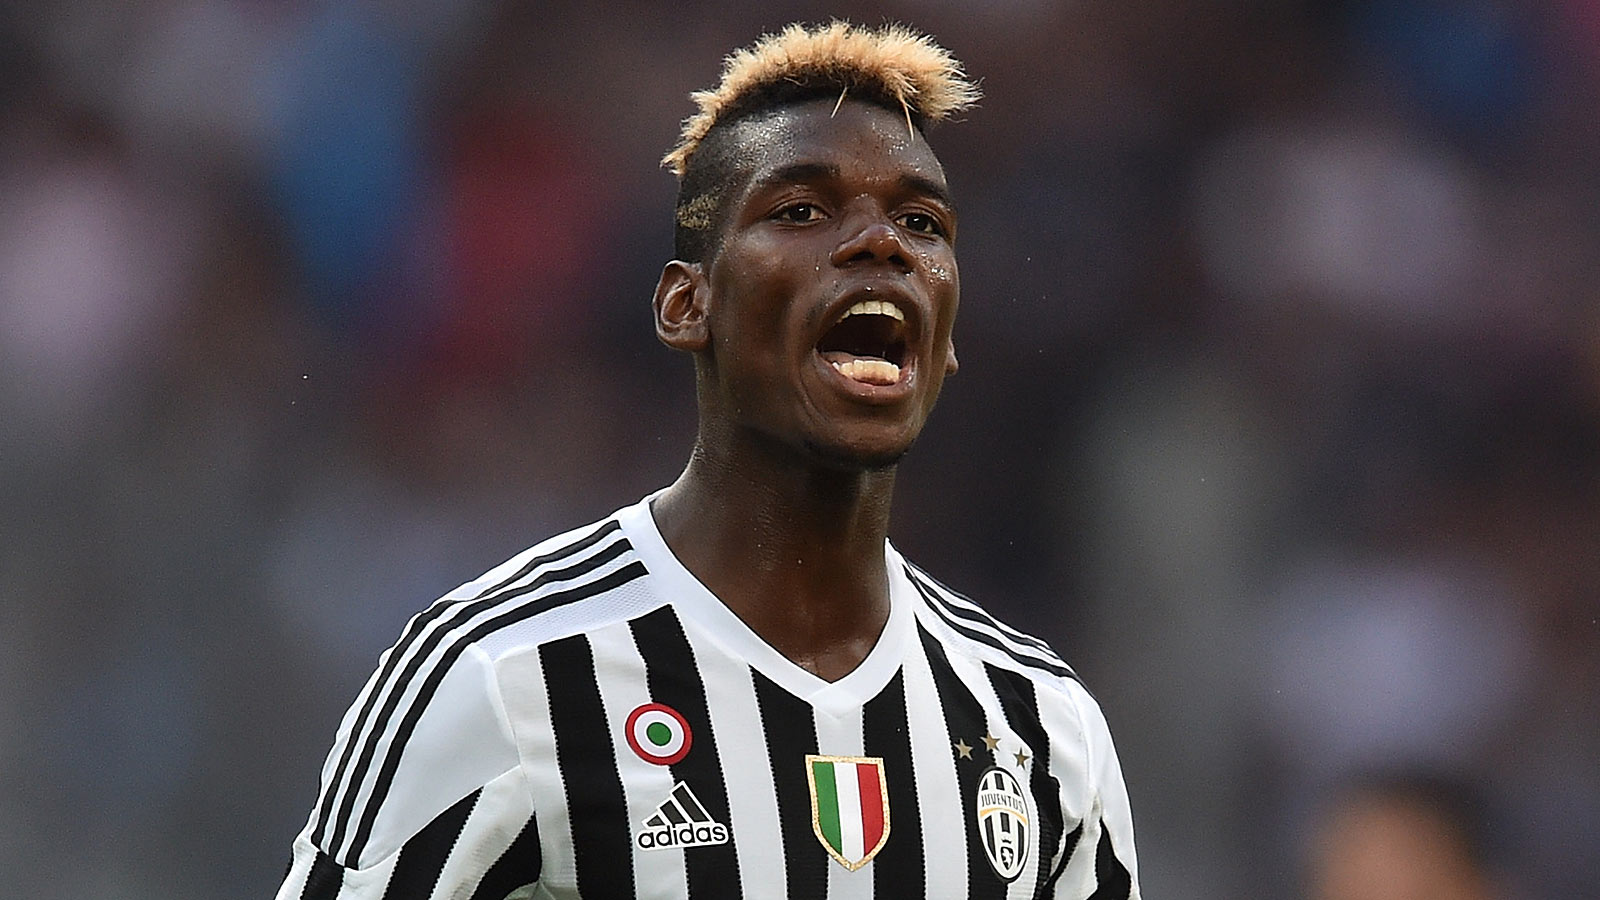 Juventus' Marotta: Pogba's transfer price will rise next season